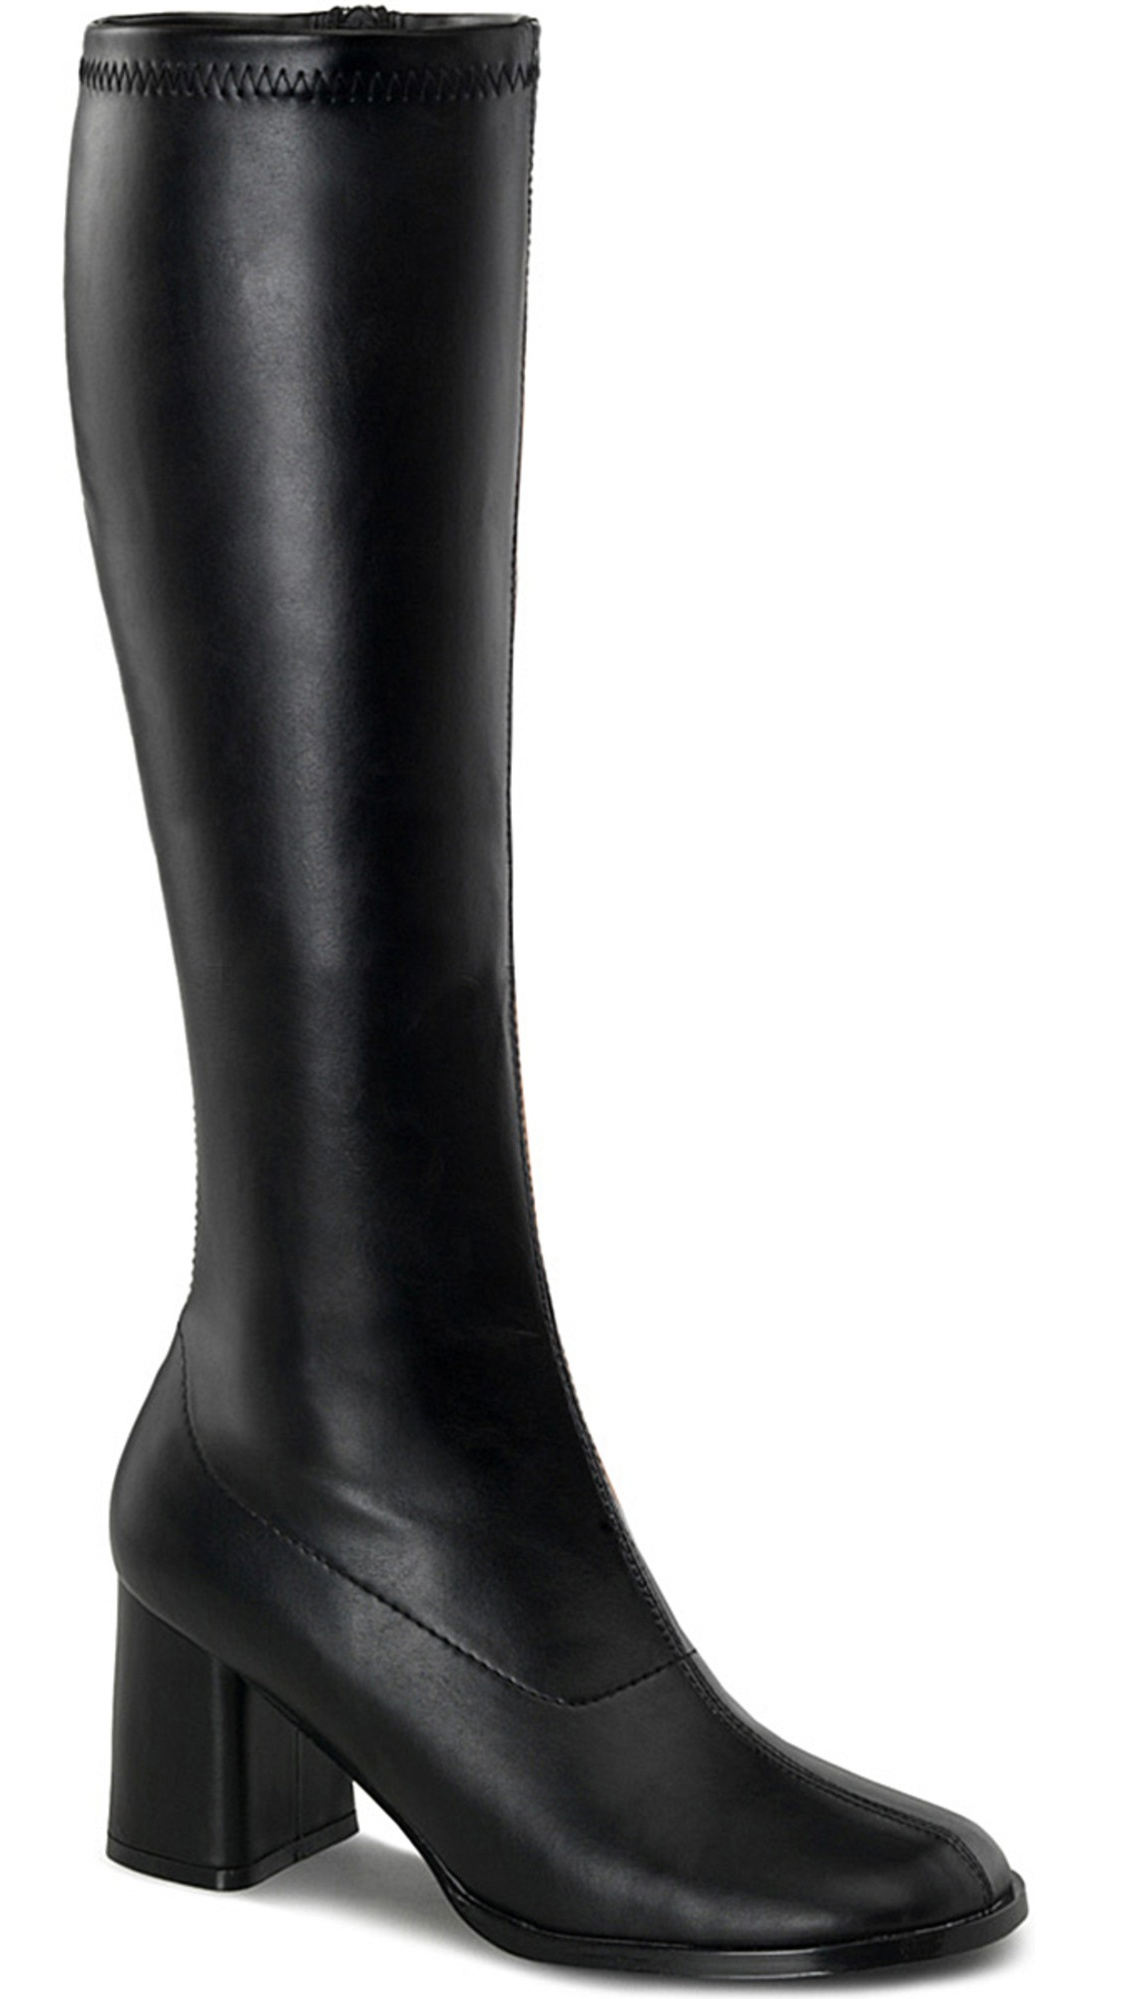 Womens Go Go Boots Black Knee High Boots 3 Inch Heels Stretch with Block Heel